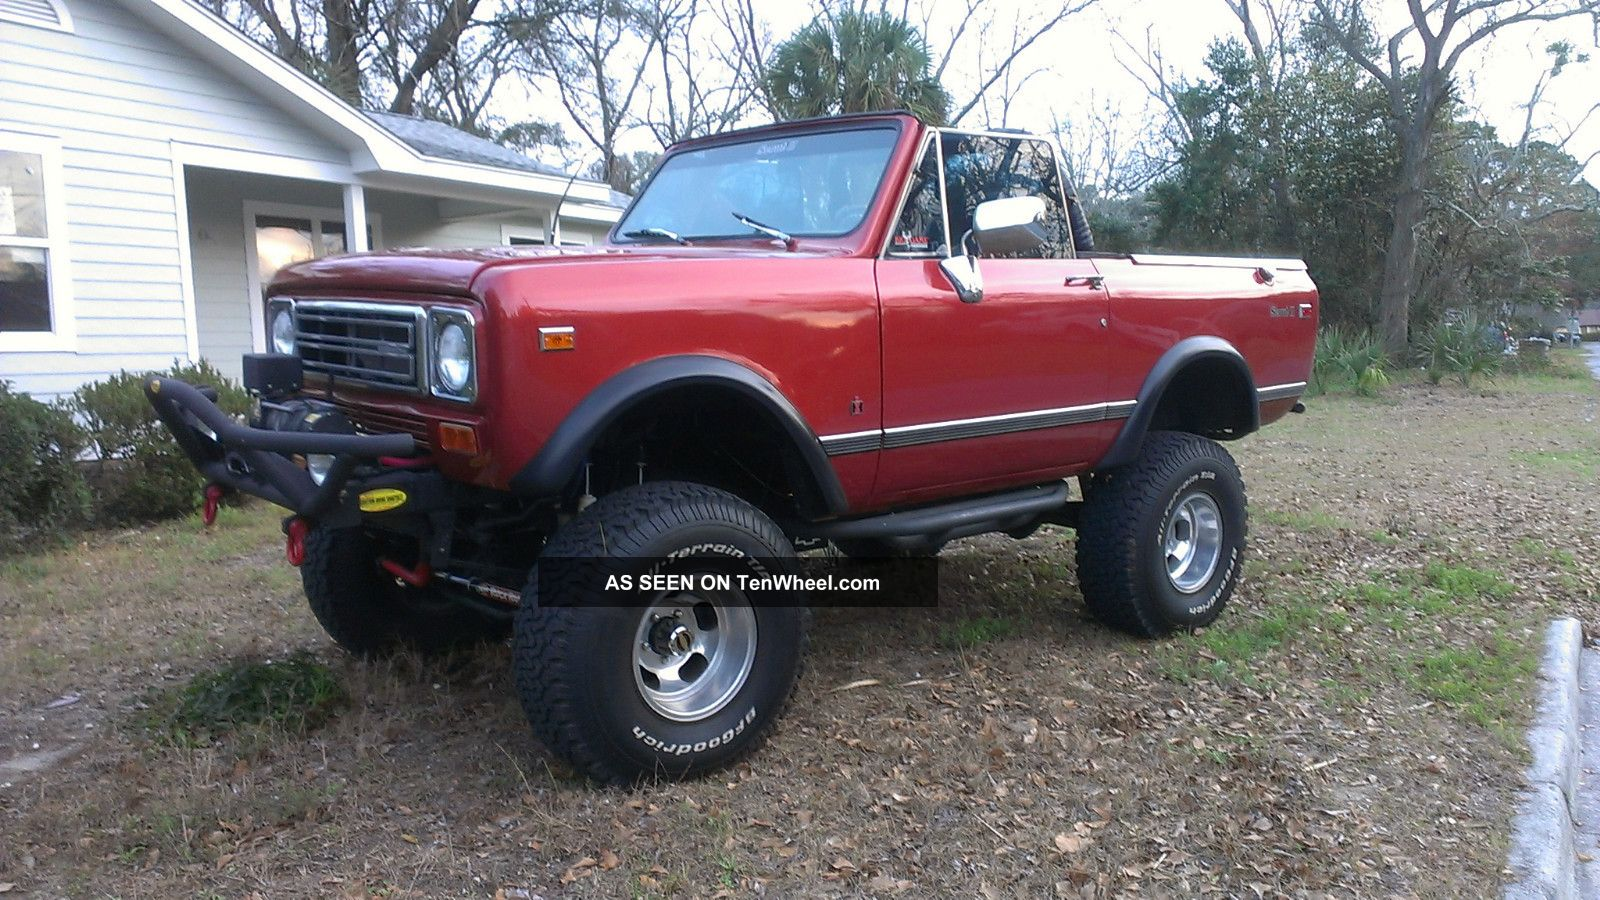 560203 Cavalier Tbi 22r additionally jeepcj   forums f7 customdashcjproject18111 index3 additionally Alfa Romeo Engine Swap together with 1948 Buick Super Wiring Diagram likewise Watch. on cj7 jeep wiring diagram